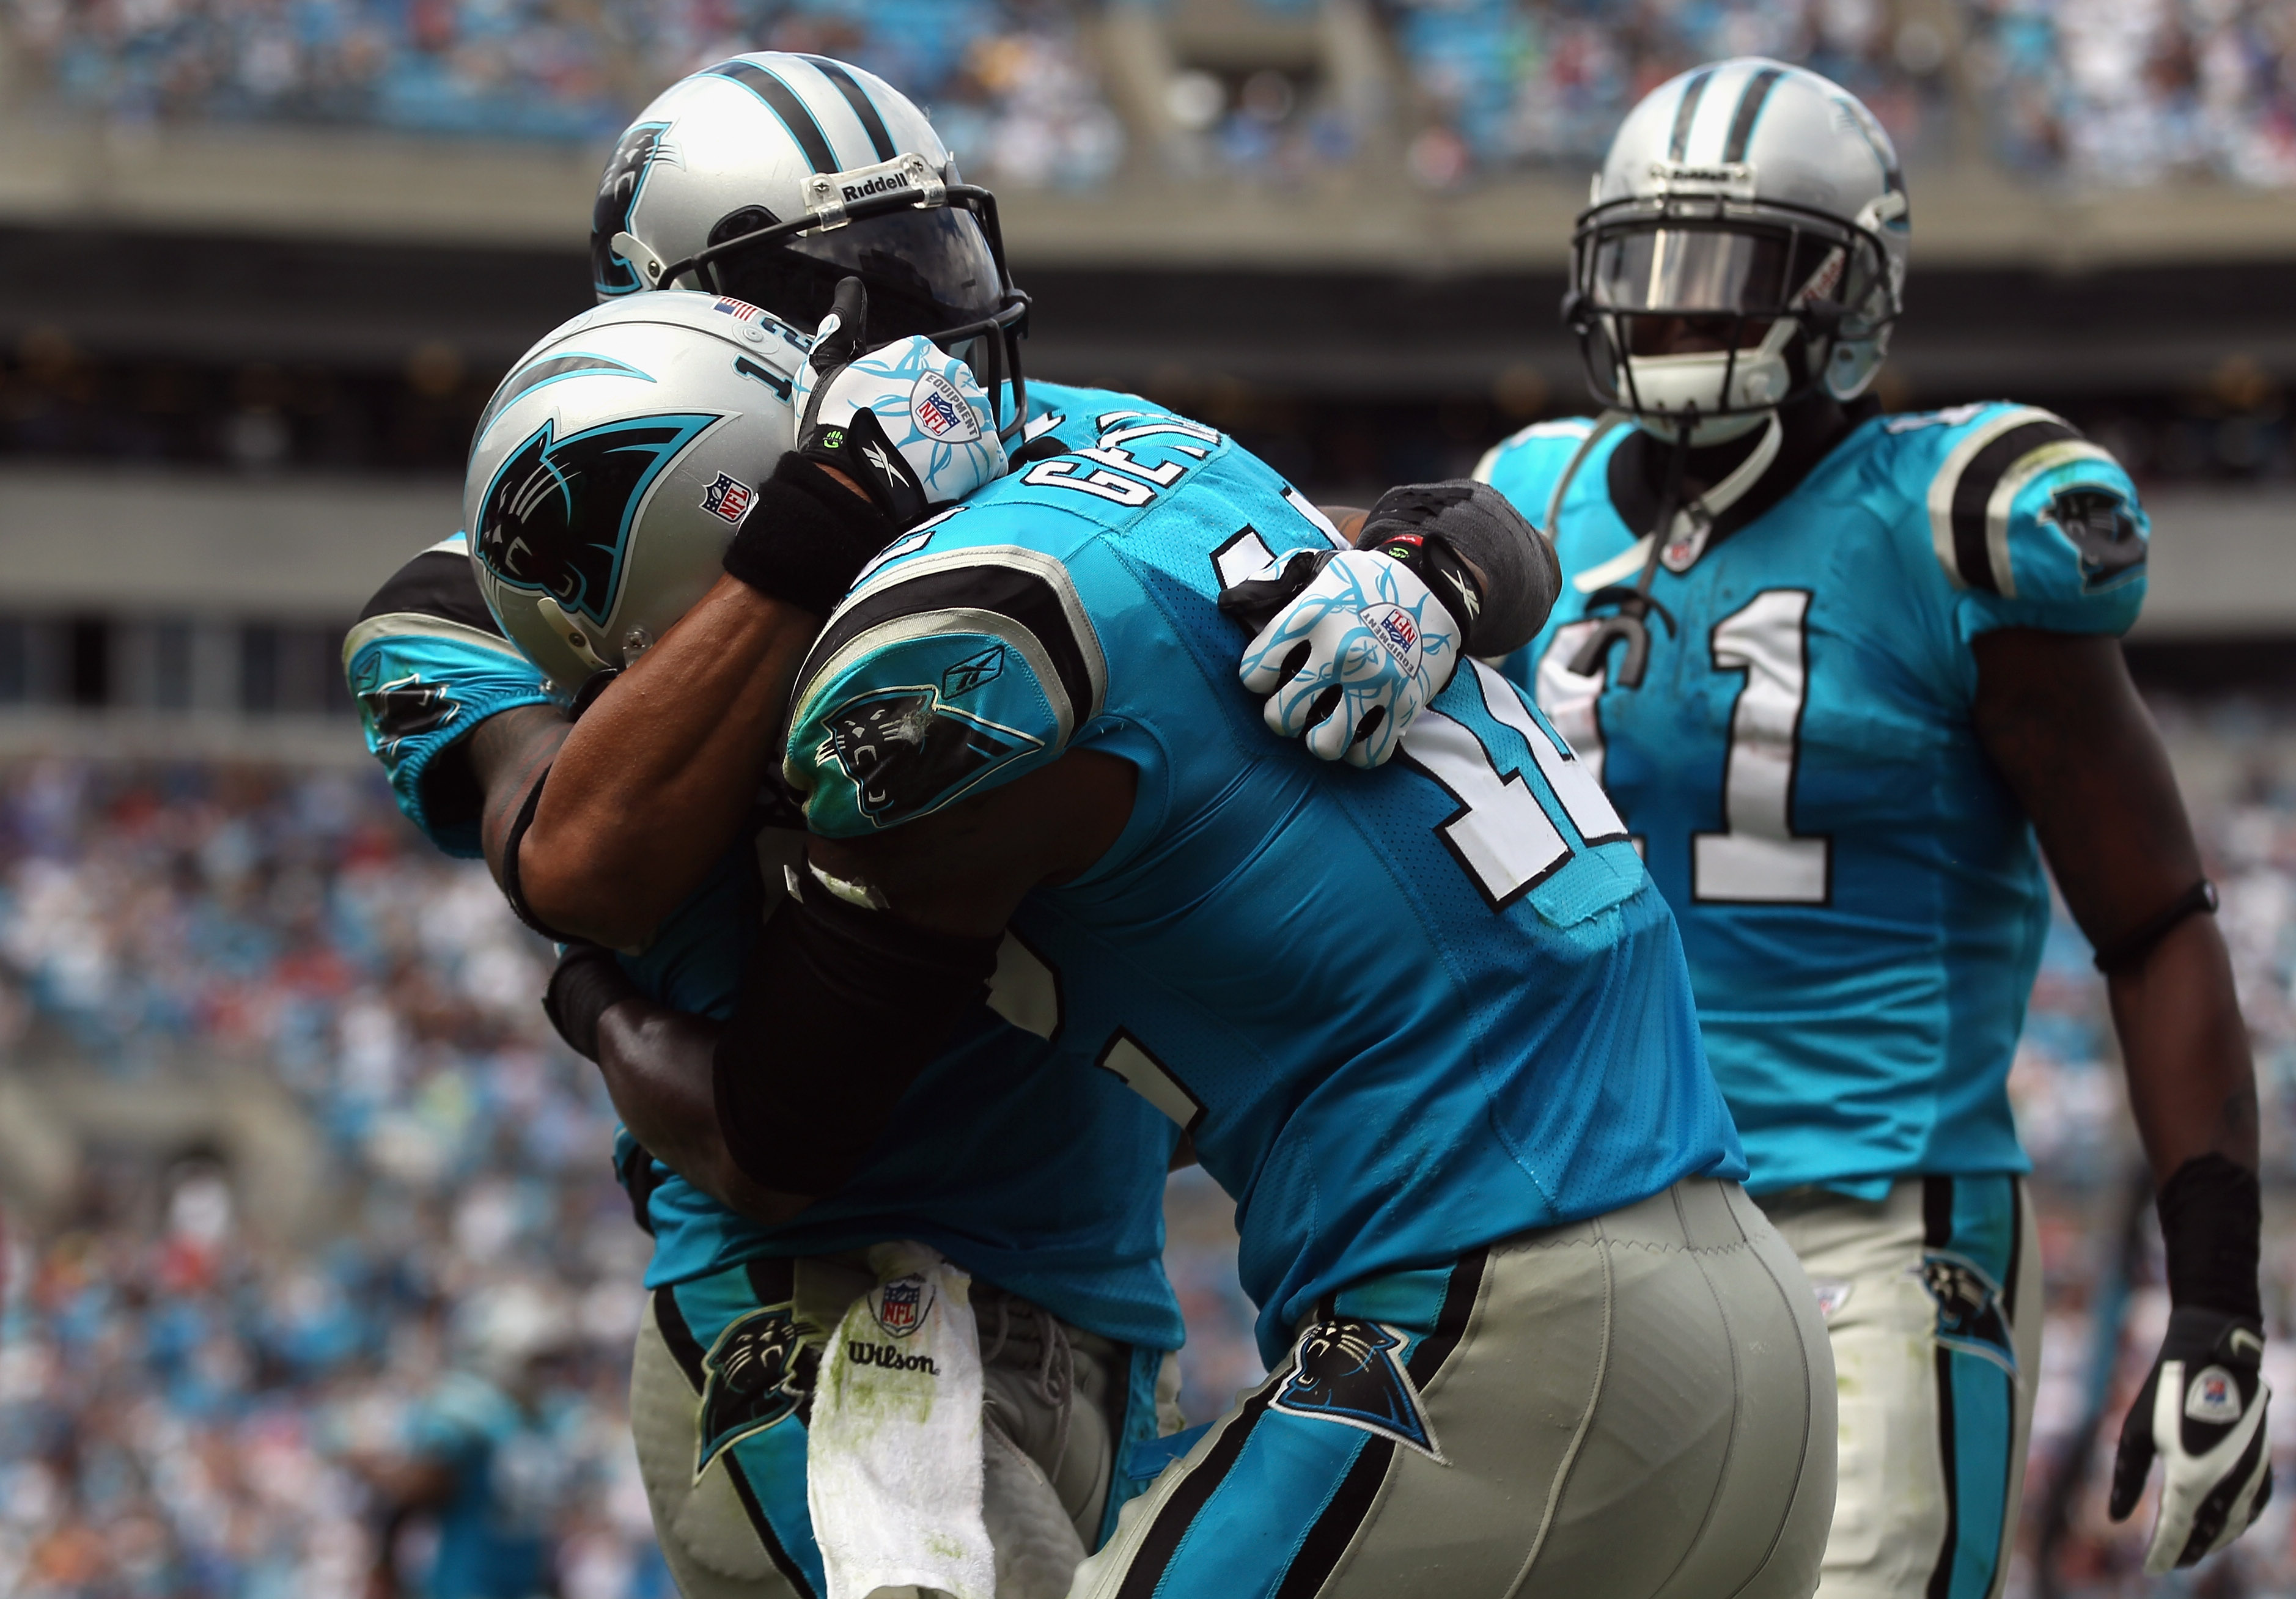 CHARLOTTE, NC - OCTOBER 24:  Teammates Steve Smith #89 and David Gettis #12 of the Carolina Panthers celebrate after Gettis scored a touchdown late in the fourth quarter against the San Francisco 49ers during their game at Bank of America Stadium on Octob